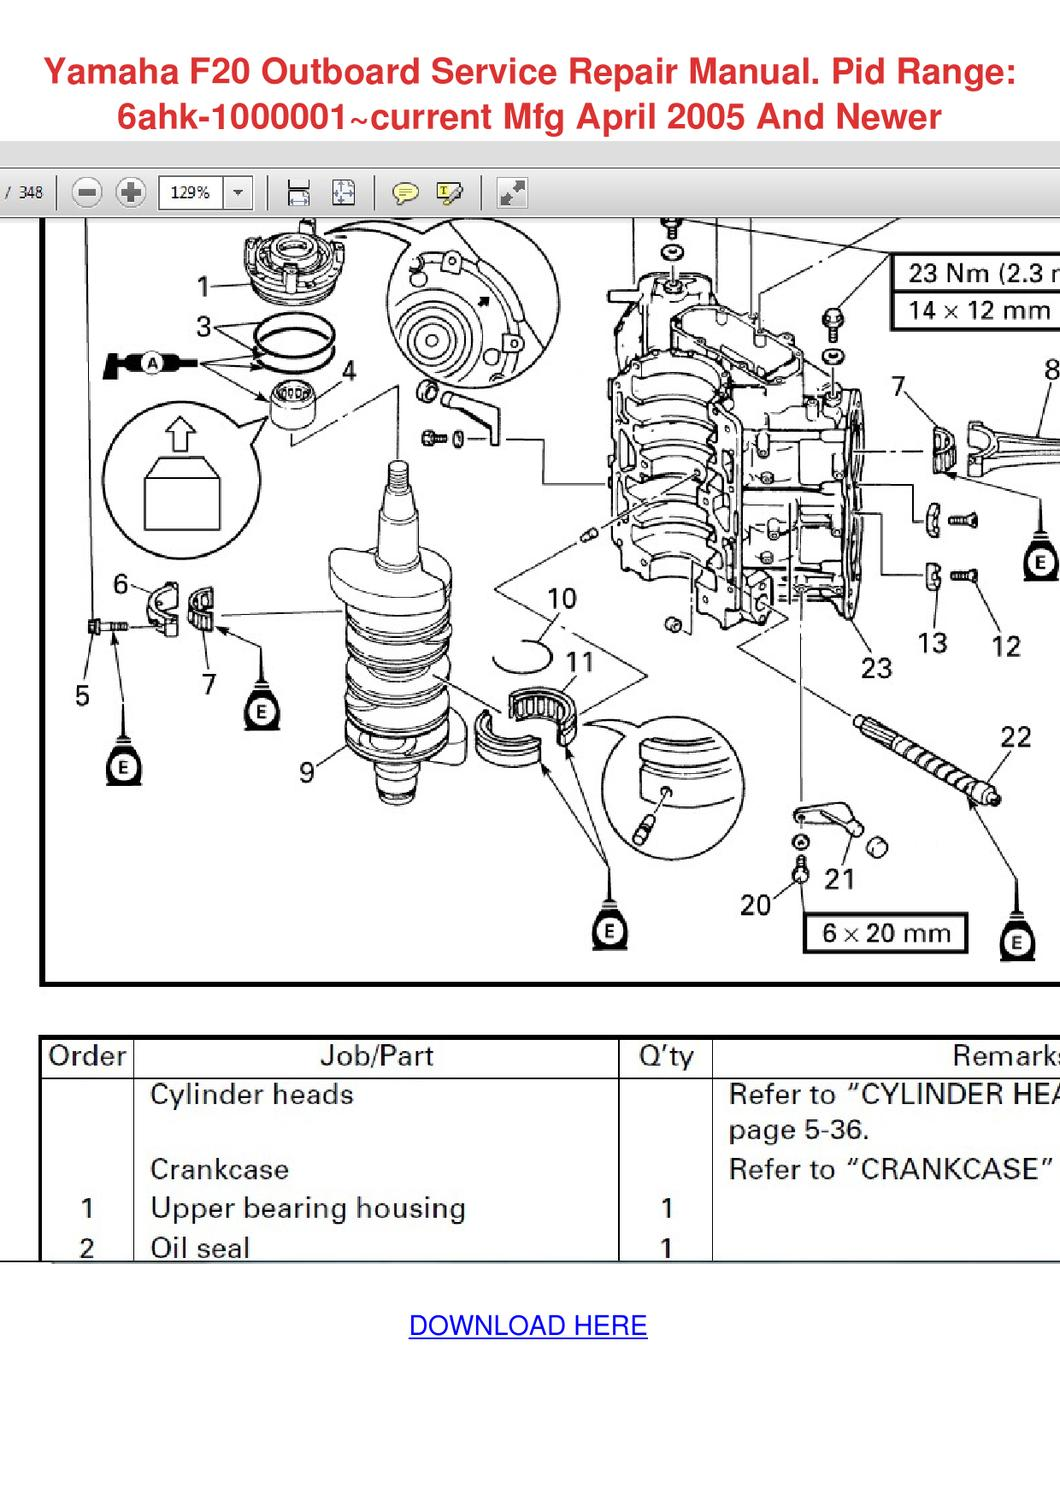 Yamaha F20 Outboard Service Repair Manual Pid By Marlen